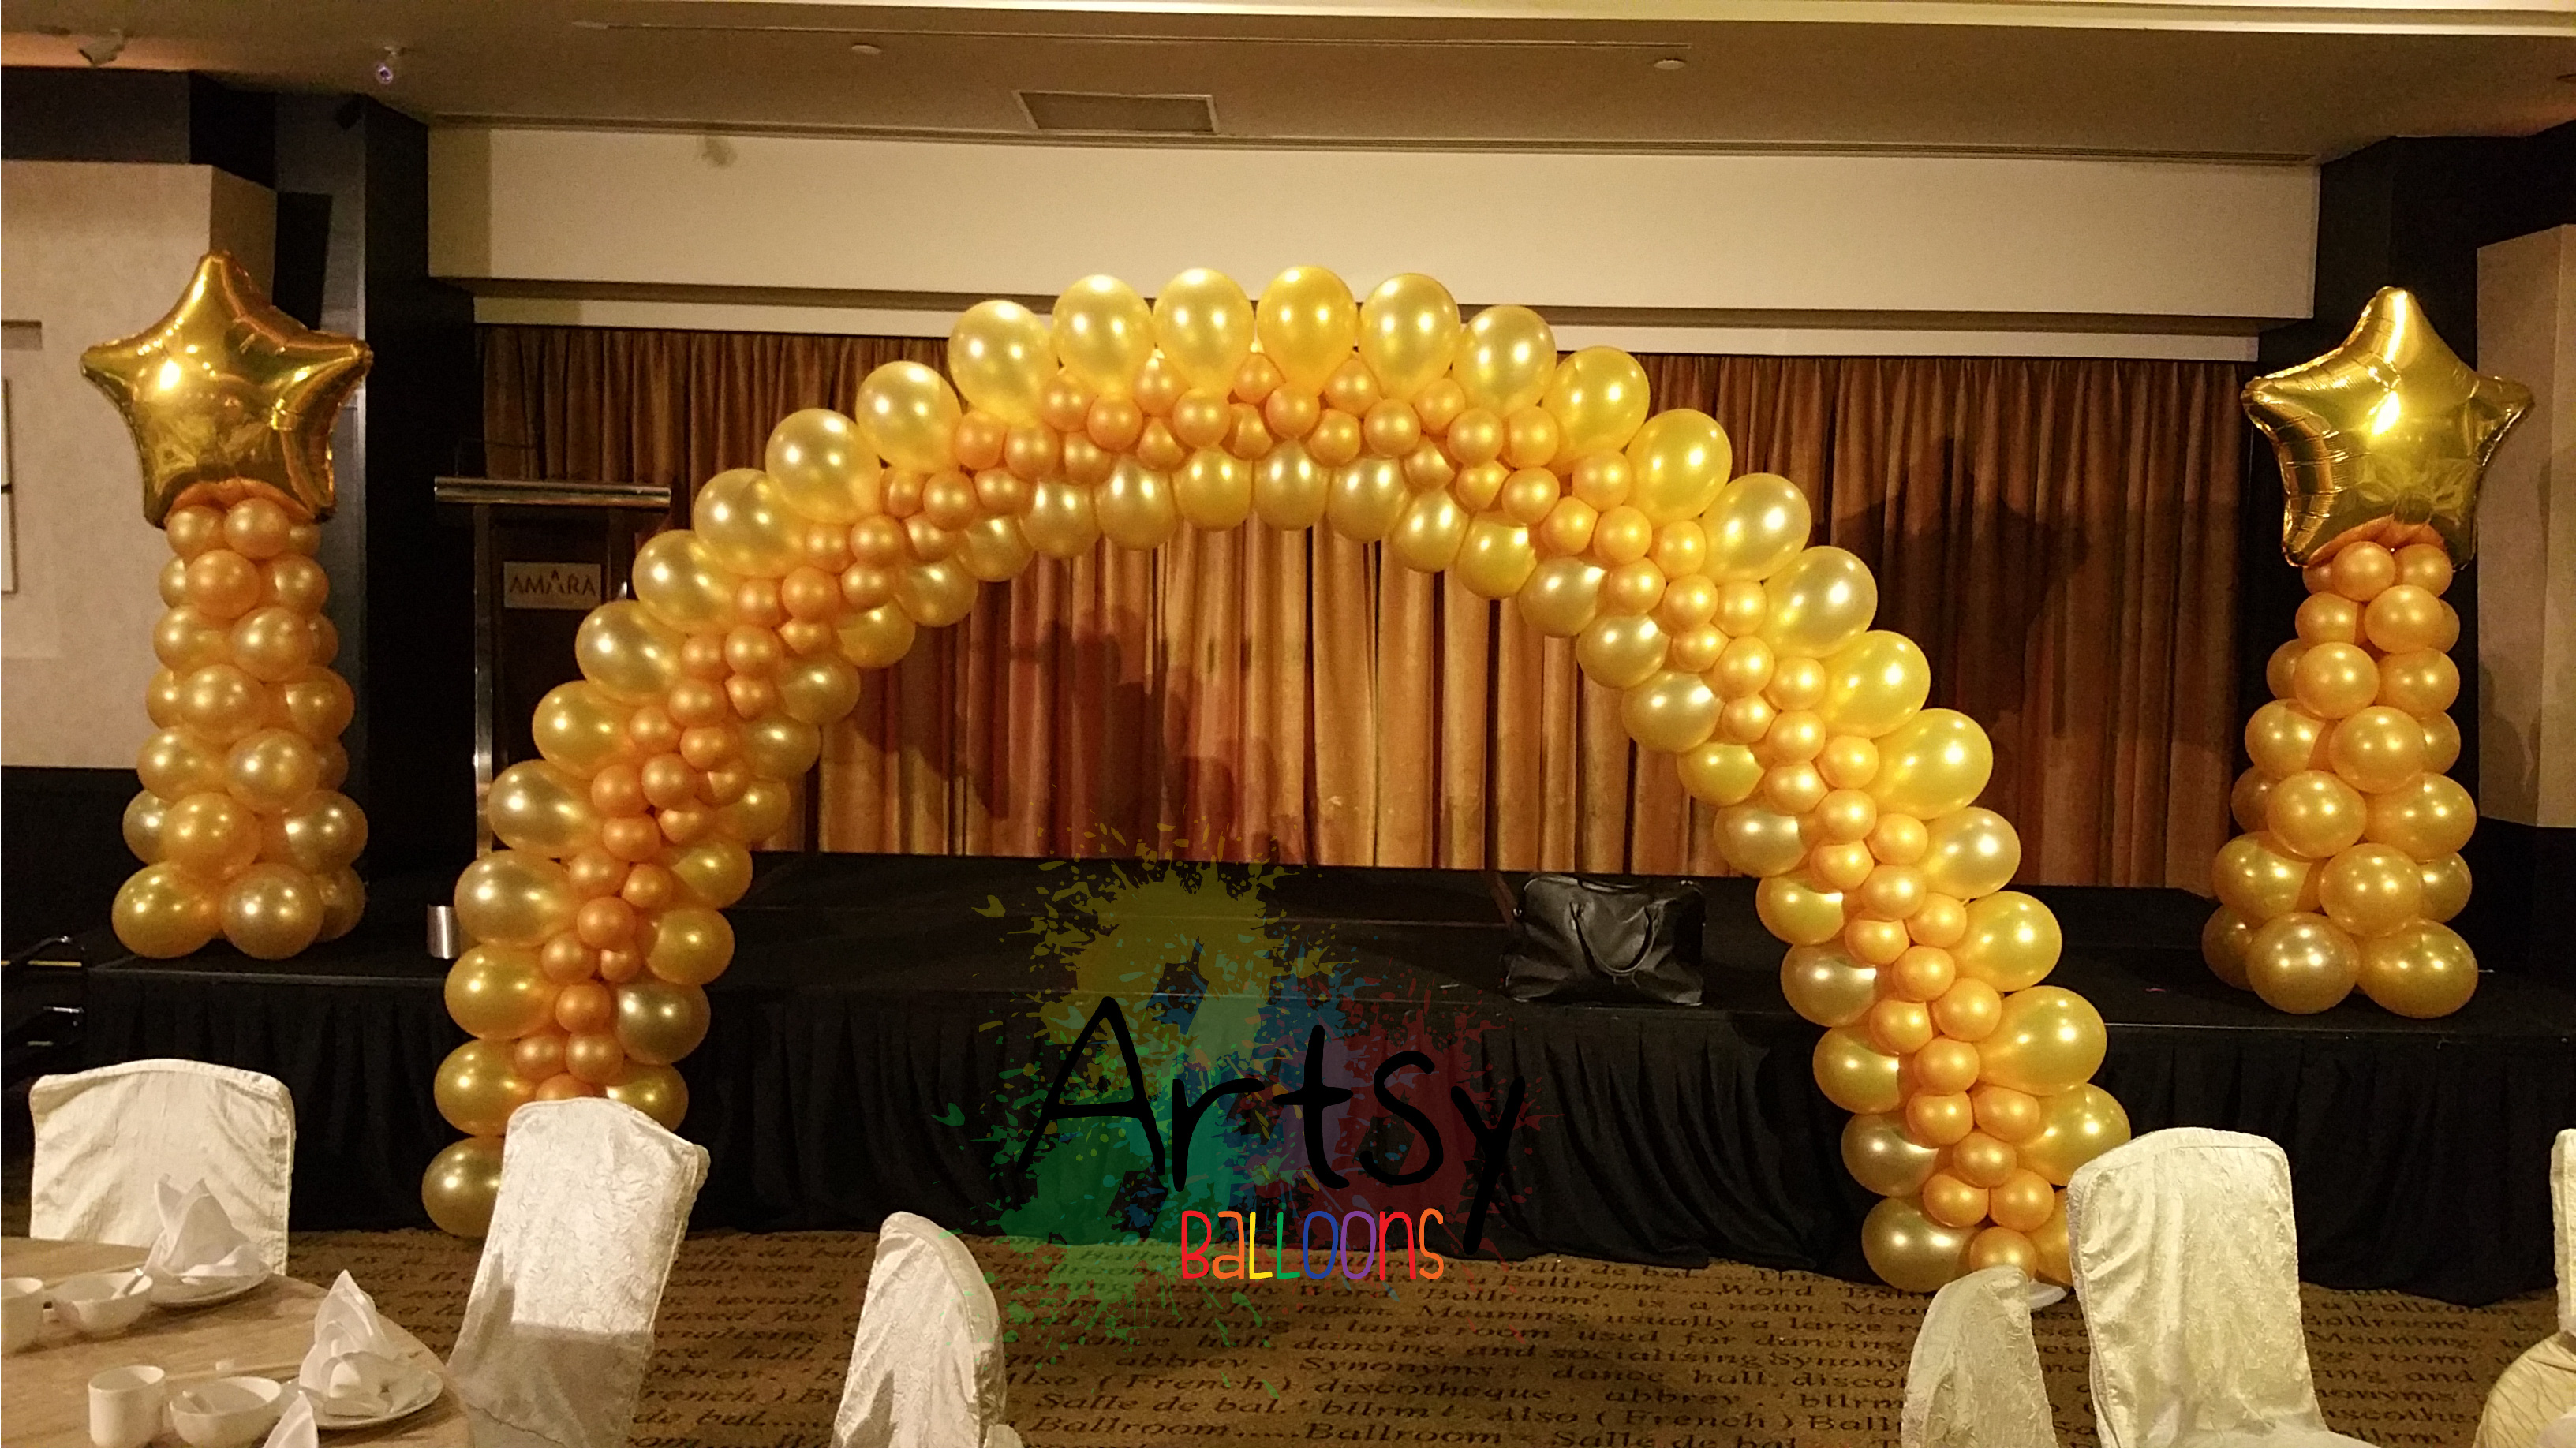 Balloon arch artsyballoons advance balloon decoration for Balloon decoration arches